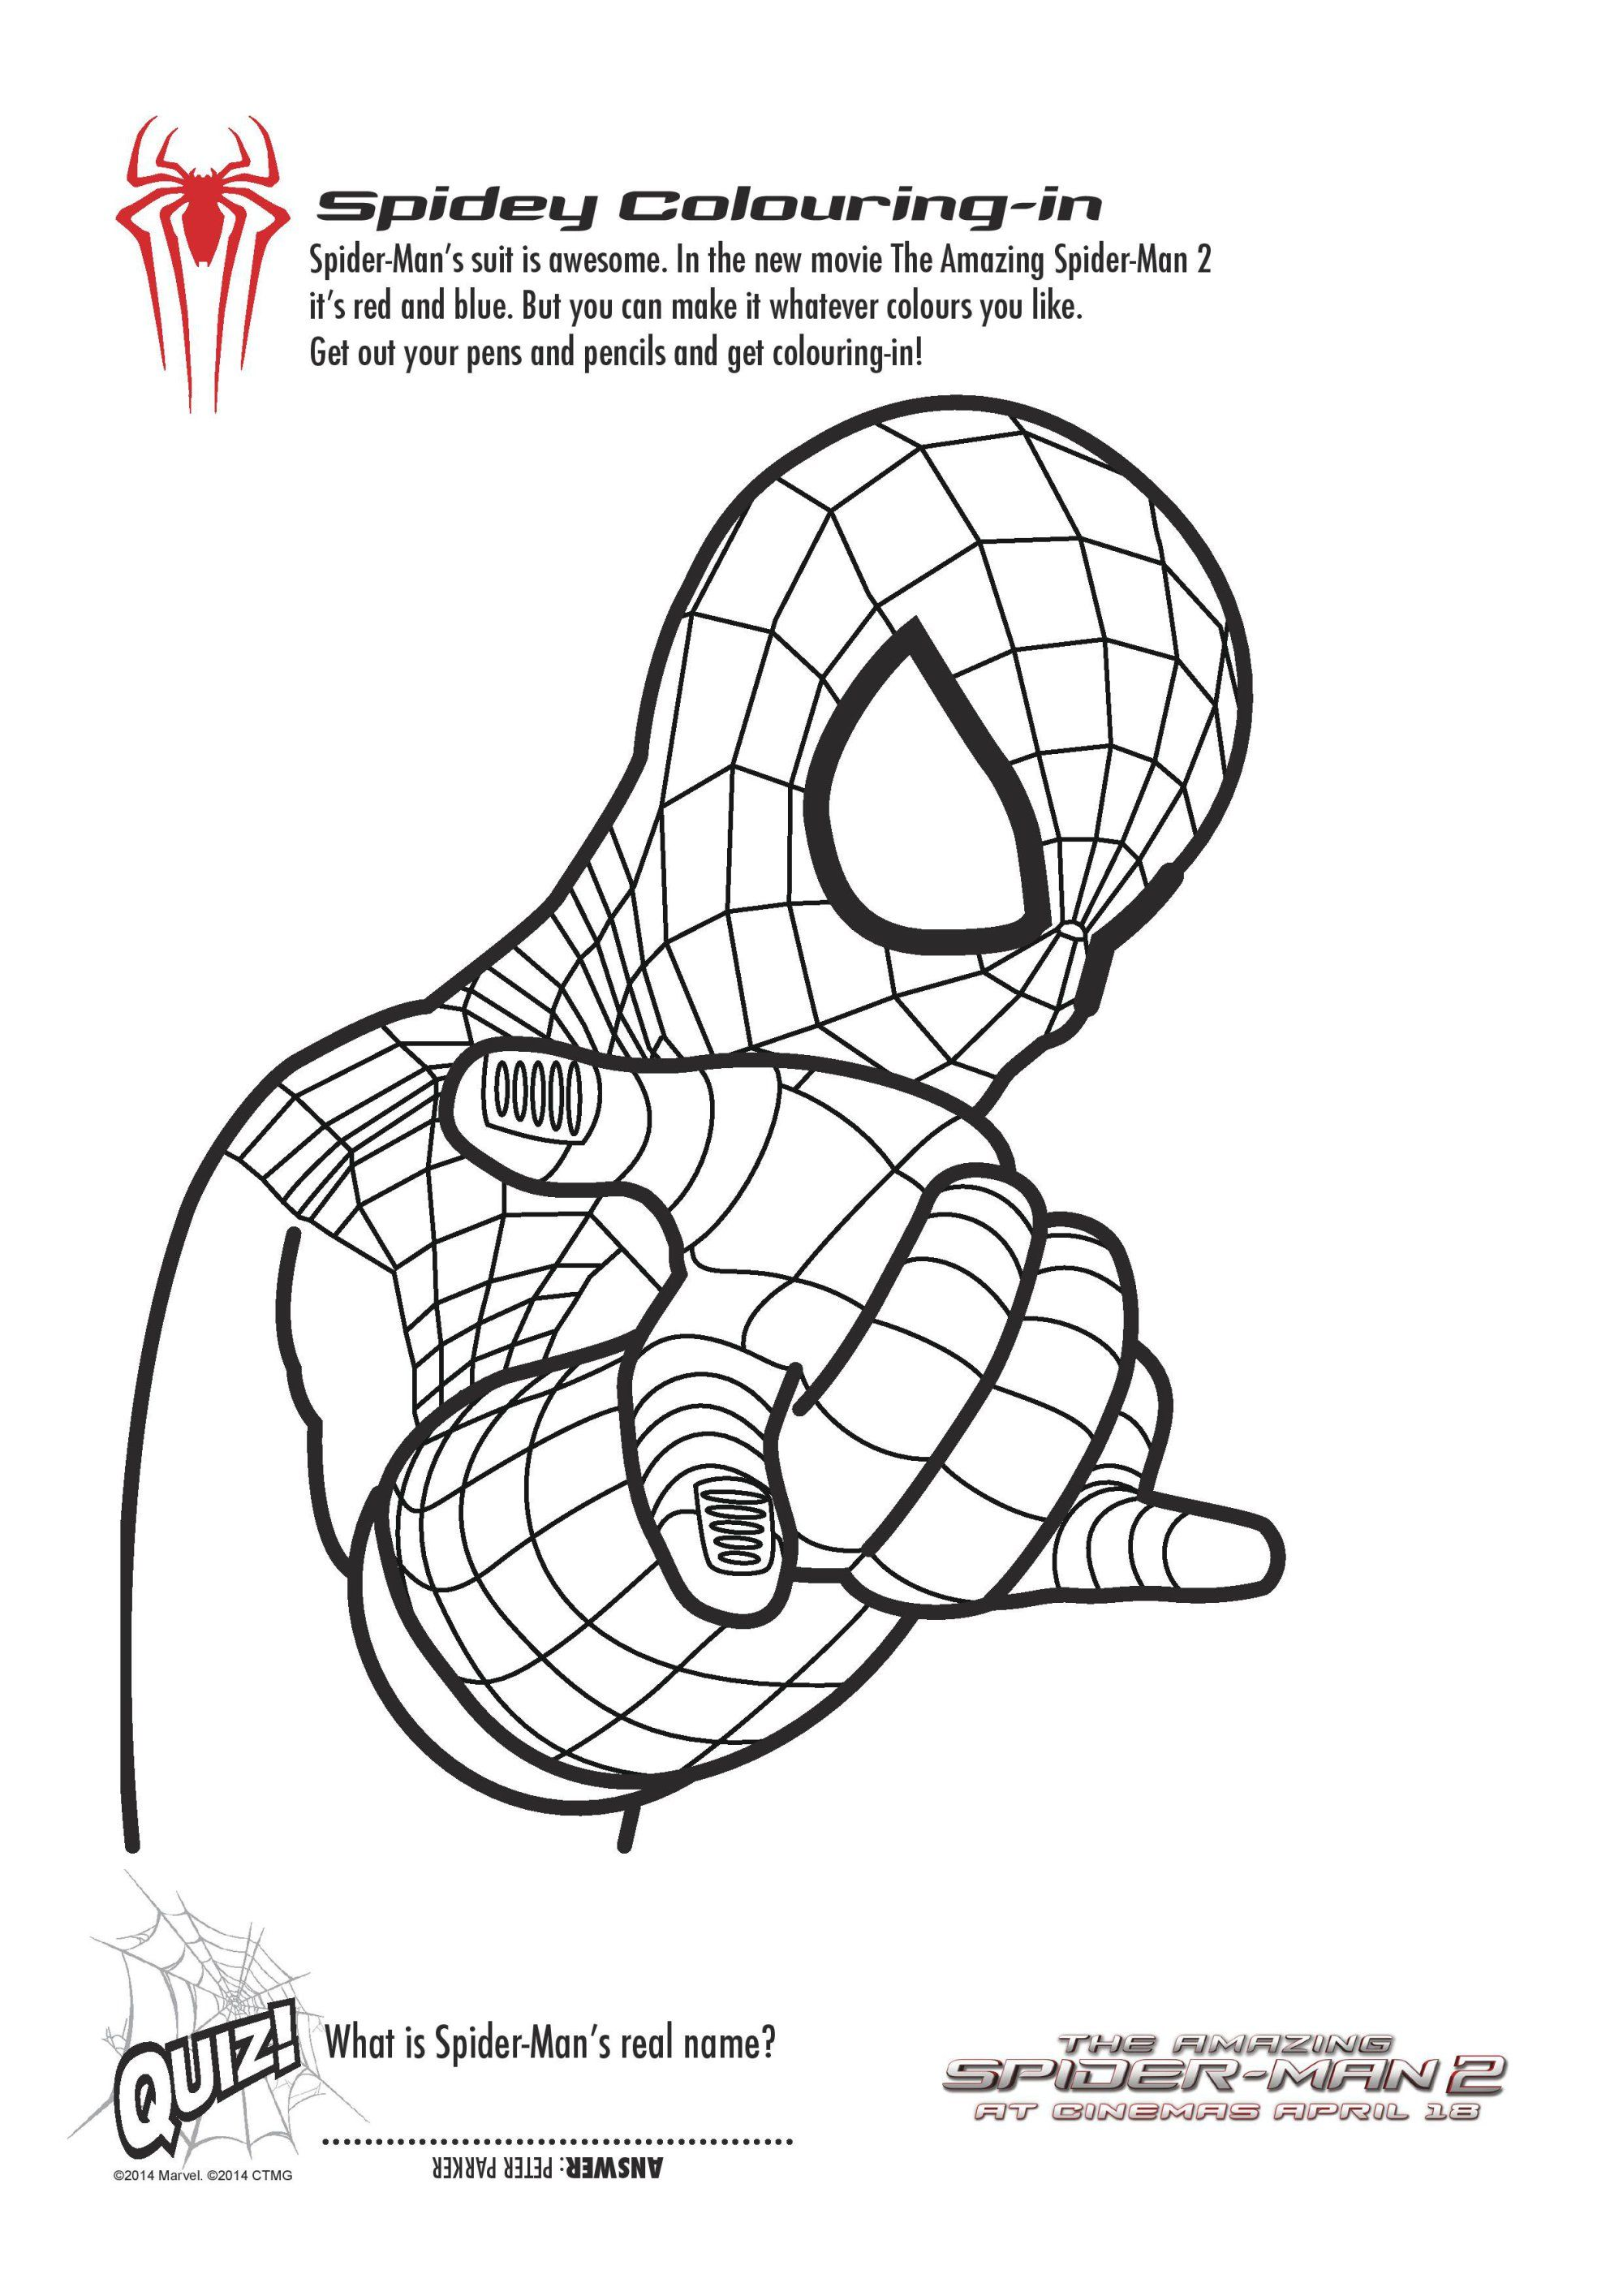 Free Printable Spiderman Colouring Pages And Activity Sheets Spiderman Coloring Avengers Coloring Pages Superhero Coloring